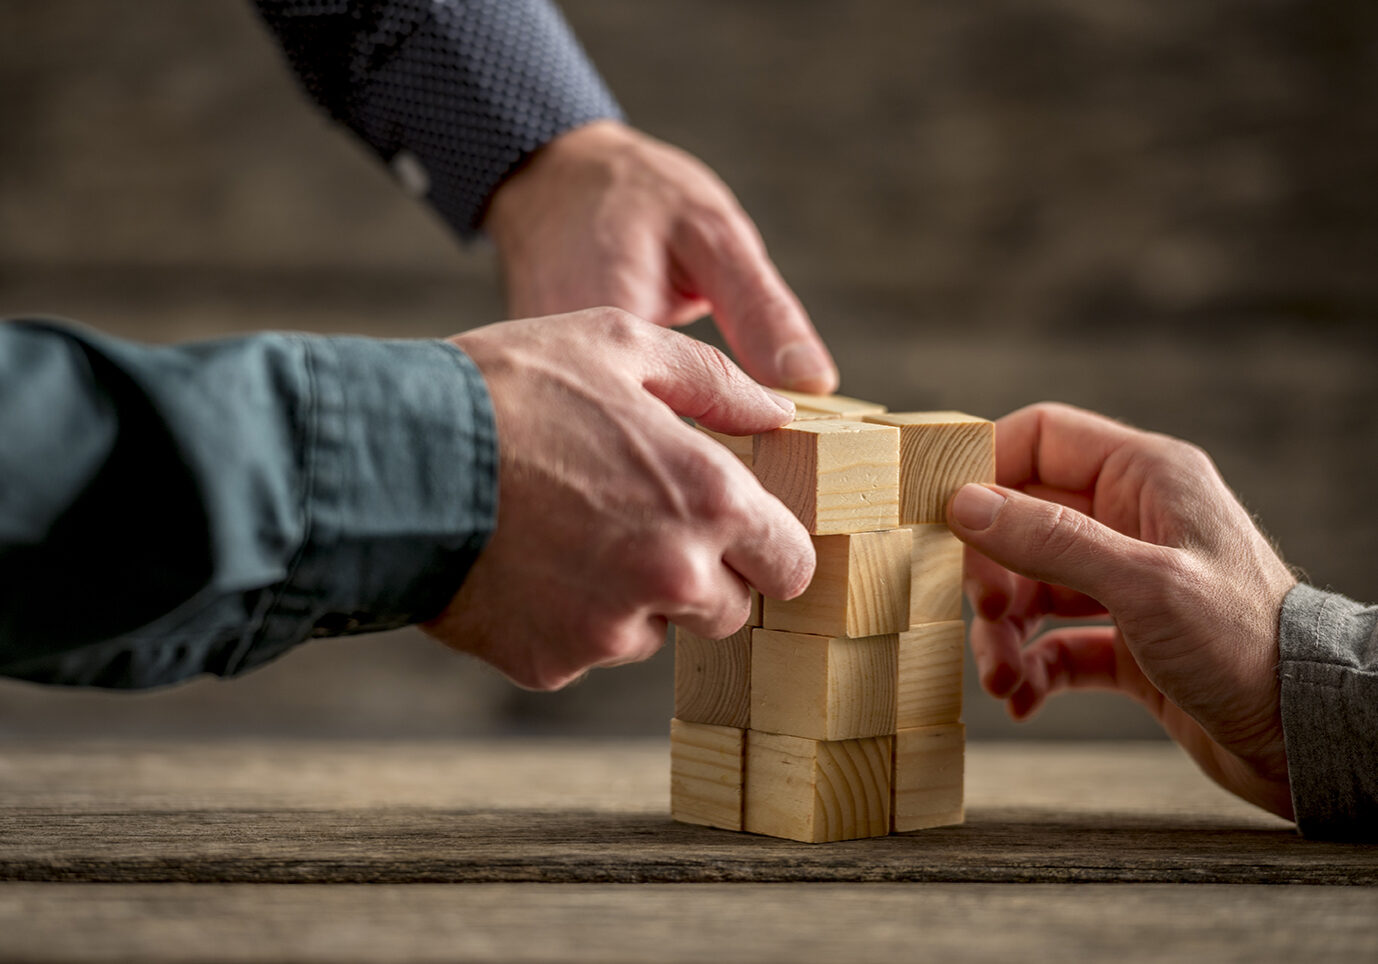 Hands of three people building a tower of wood blocks on a table, teamwork concept.